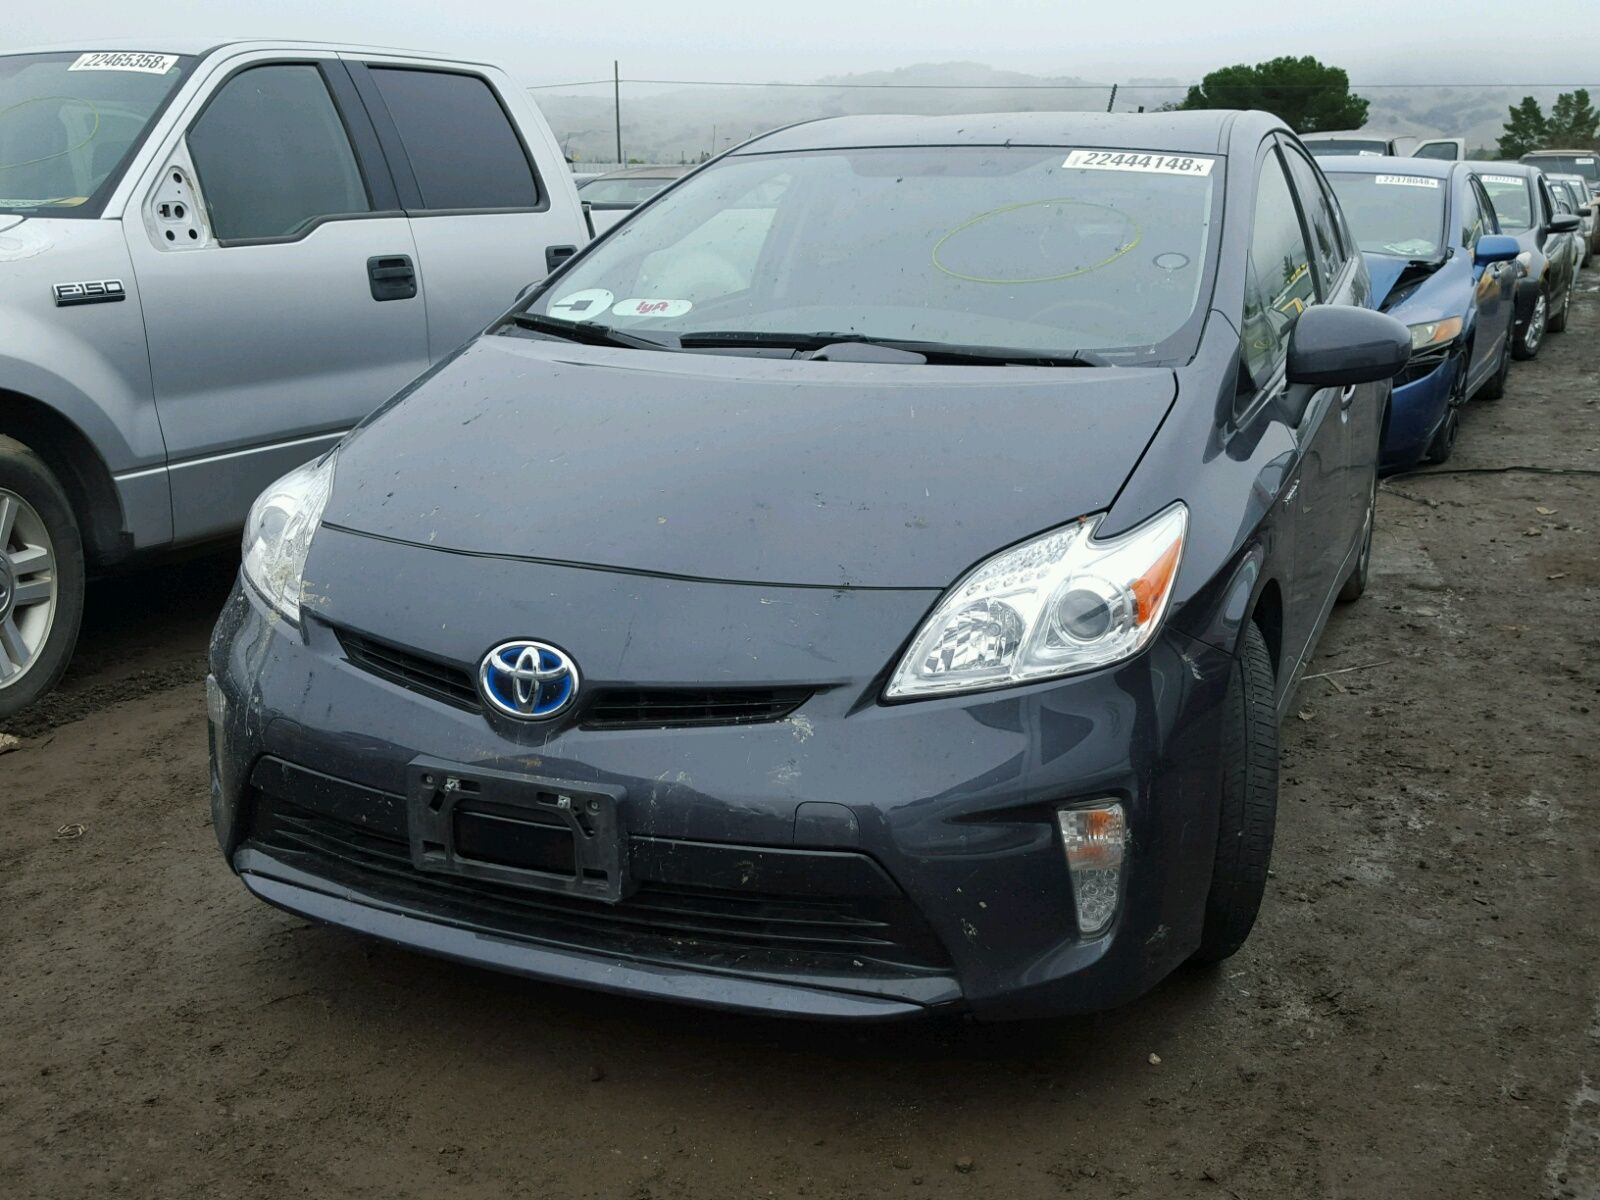 2015 #TOYOTA #PRIUS 1.8L for Sale at #Copart Auto Auction. Bid & Win ...